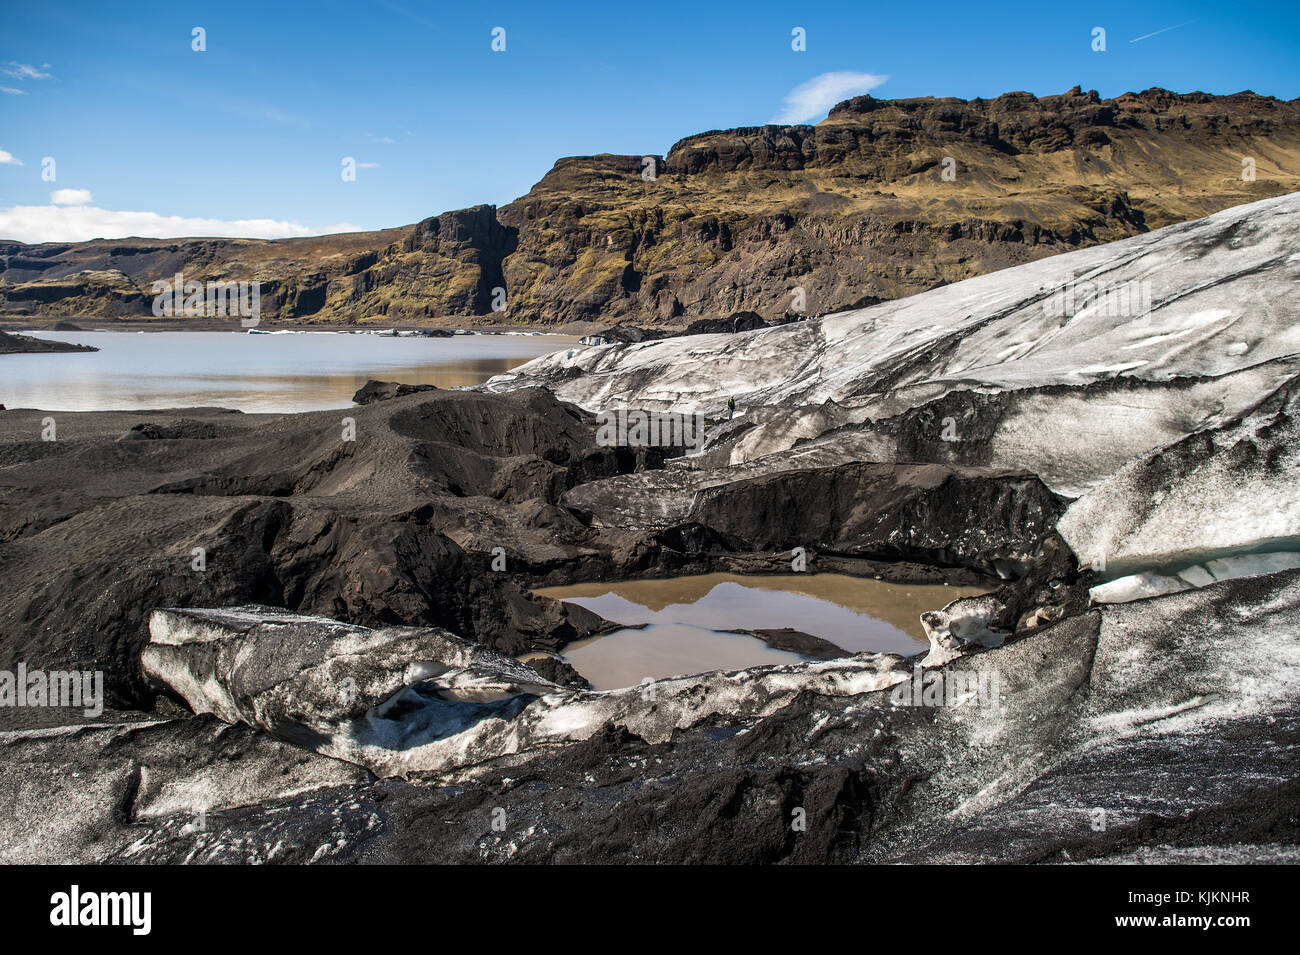 Lacs dans Su urland. L'Islande. Photo Stock